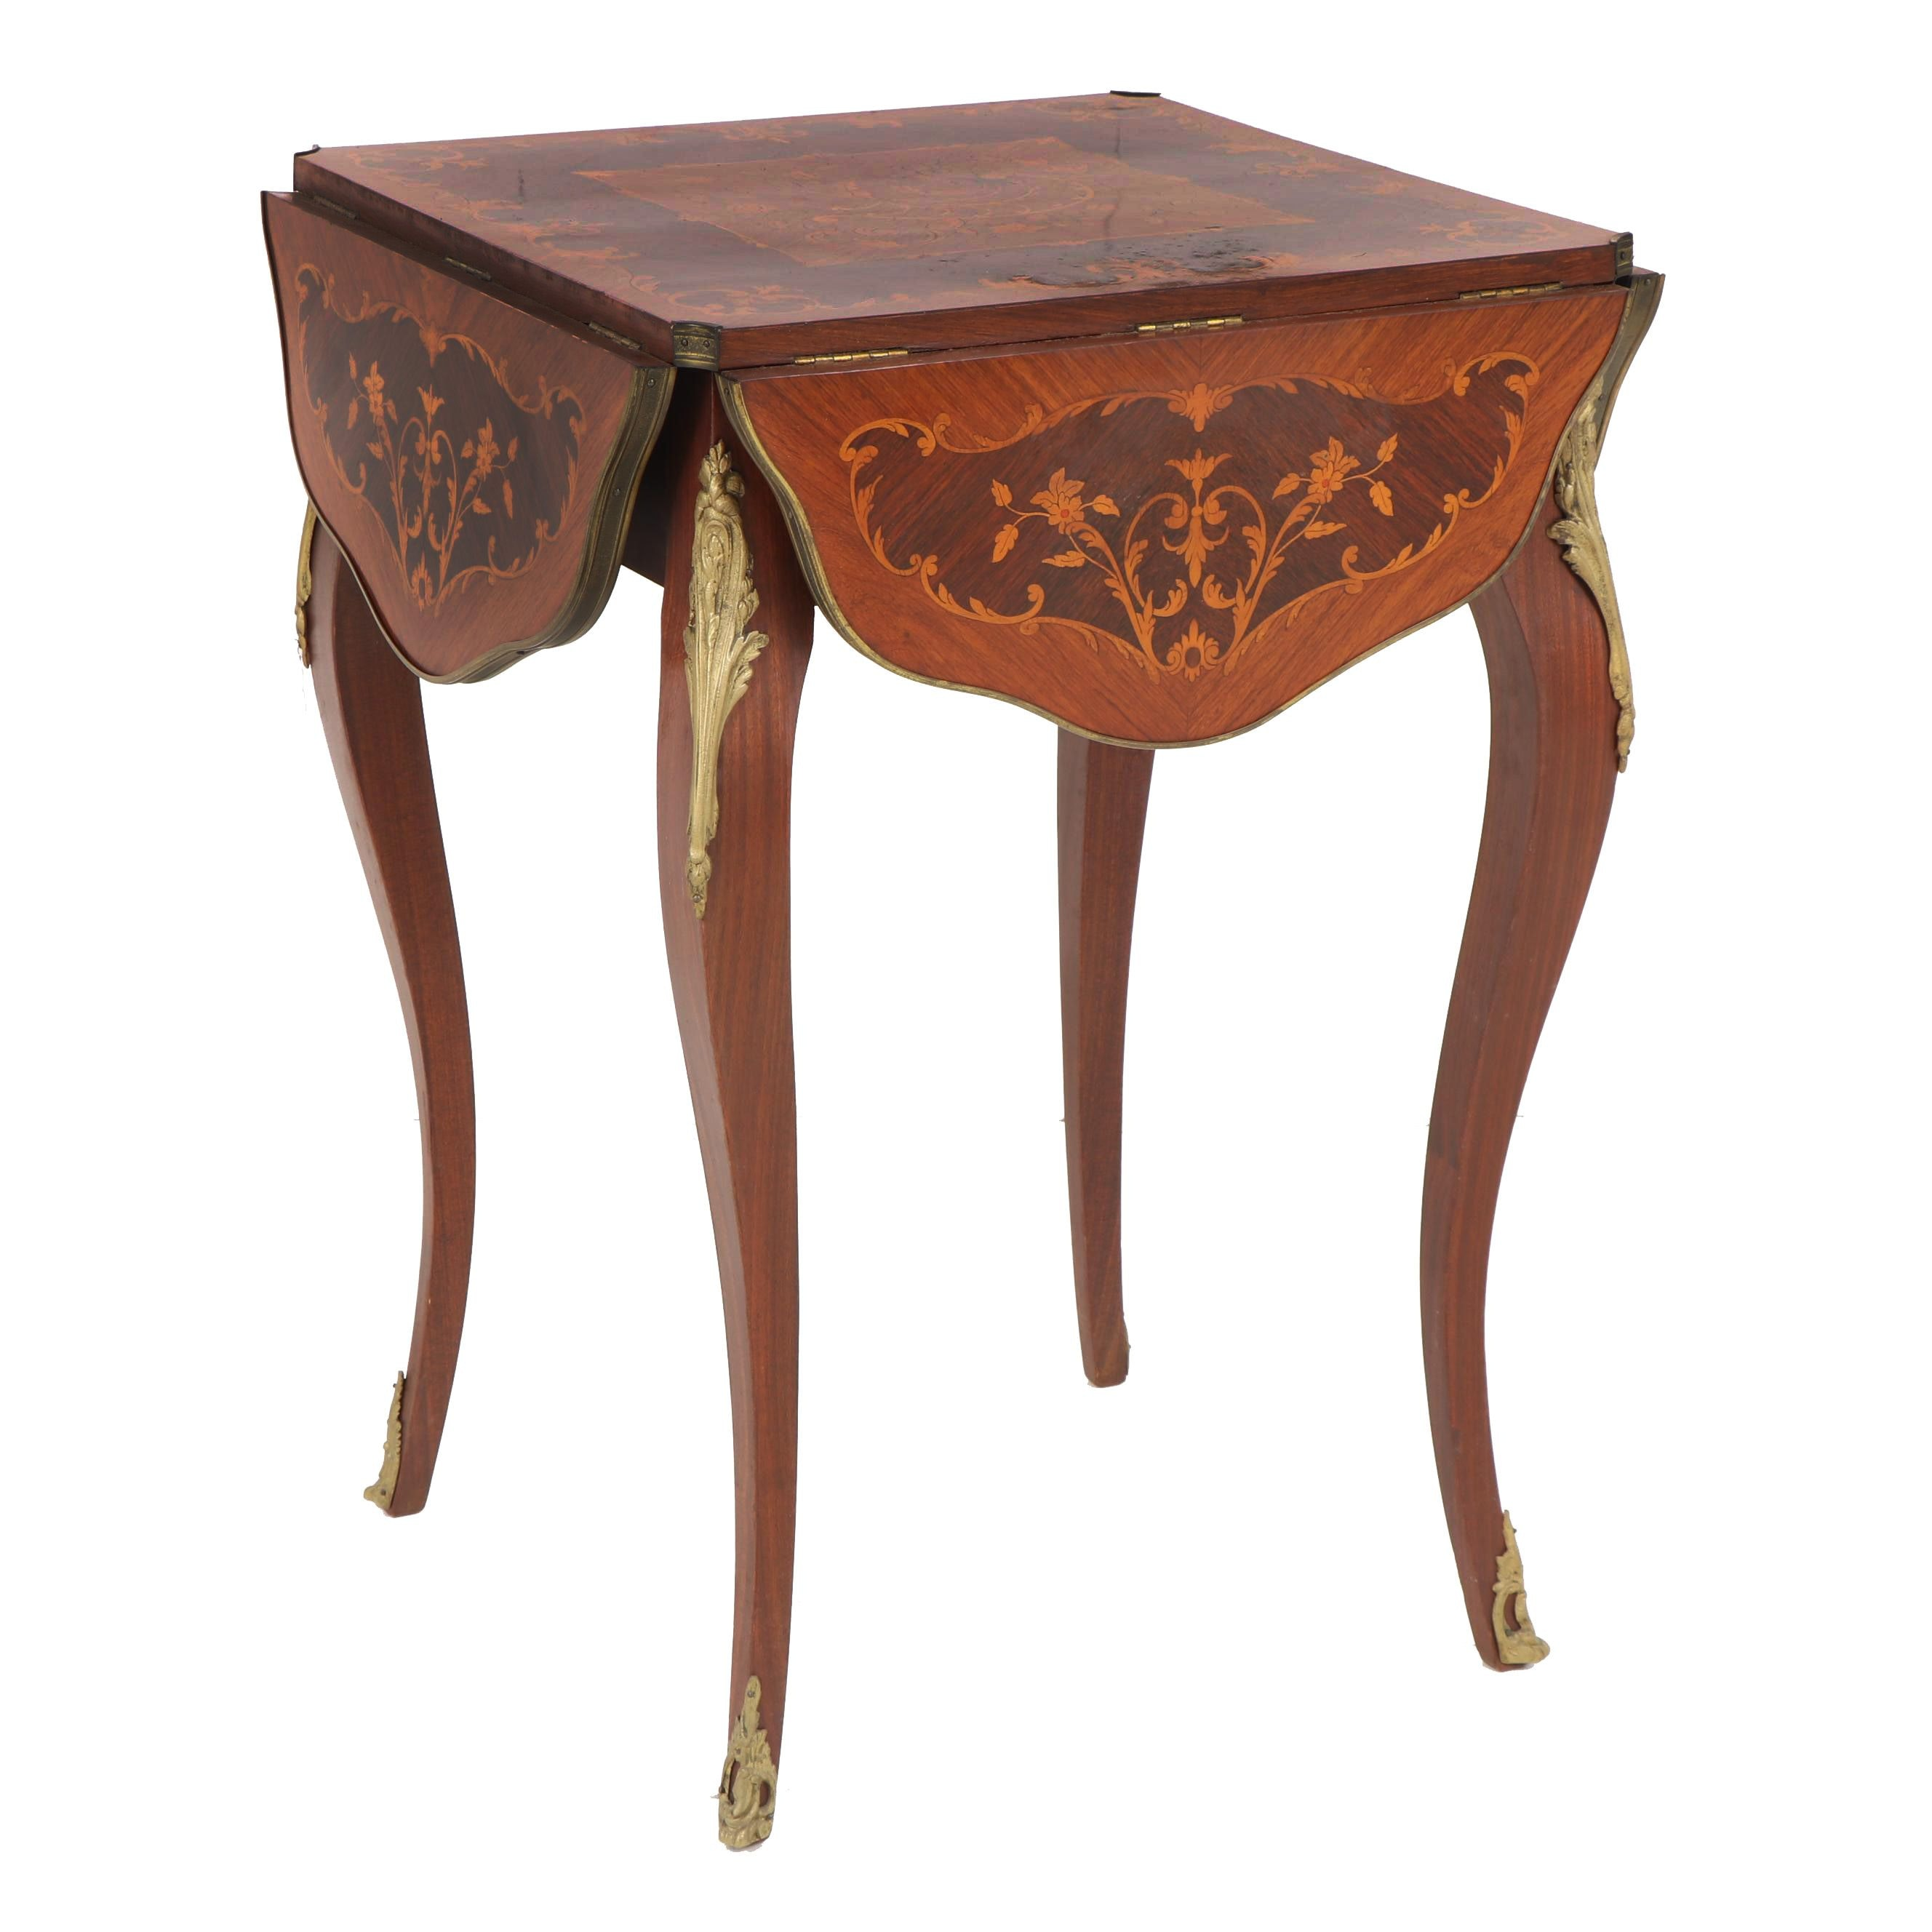 Louis XV Style Marquetry and Mahogany Drop Leaf Table, 20th Century